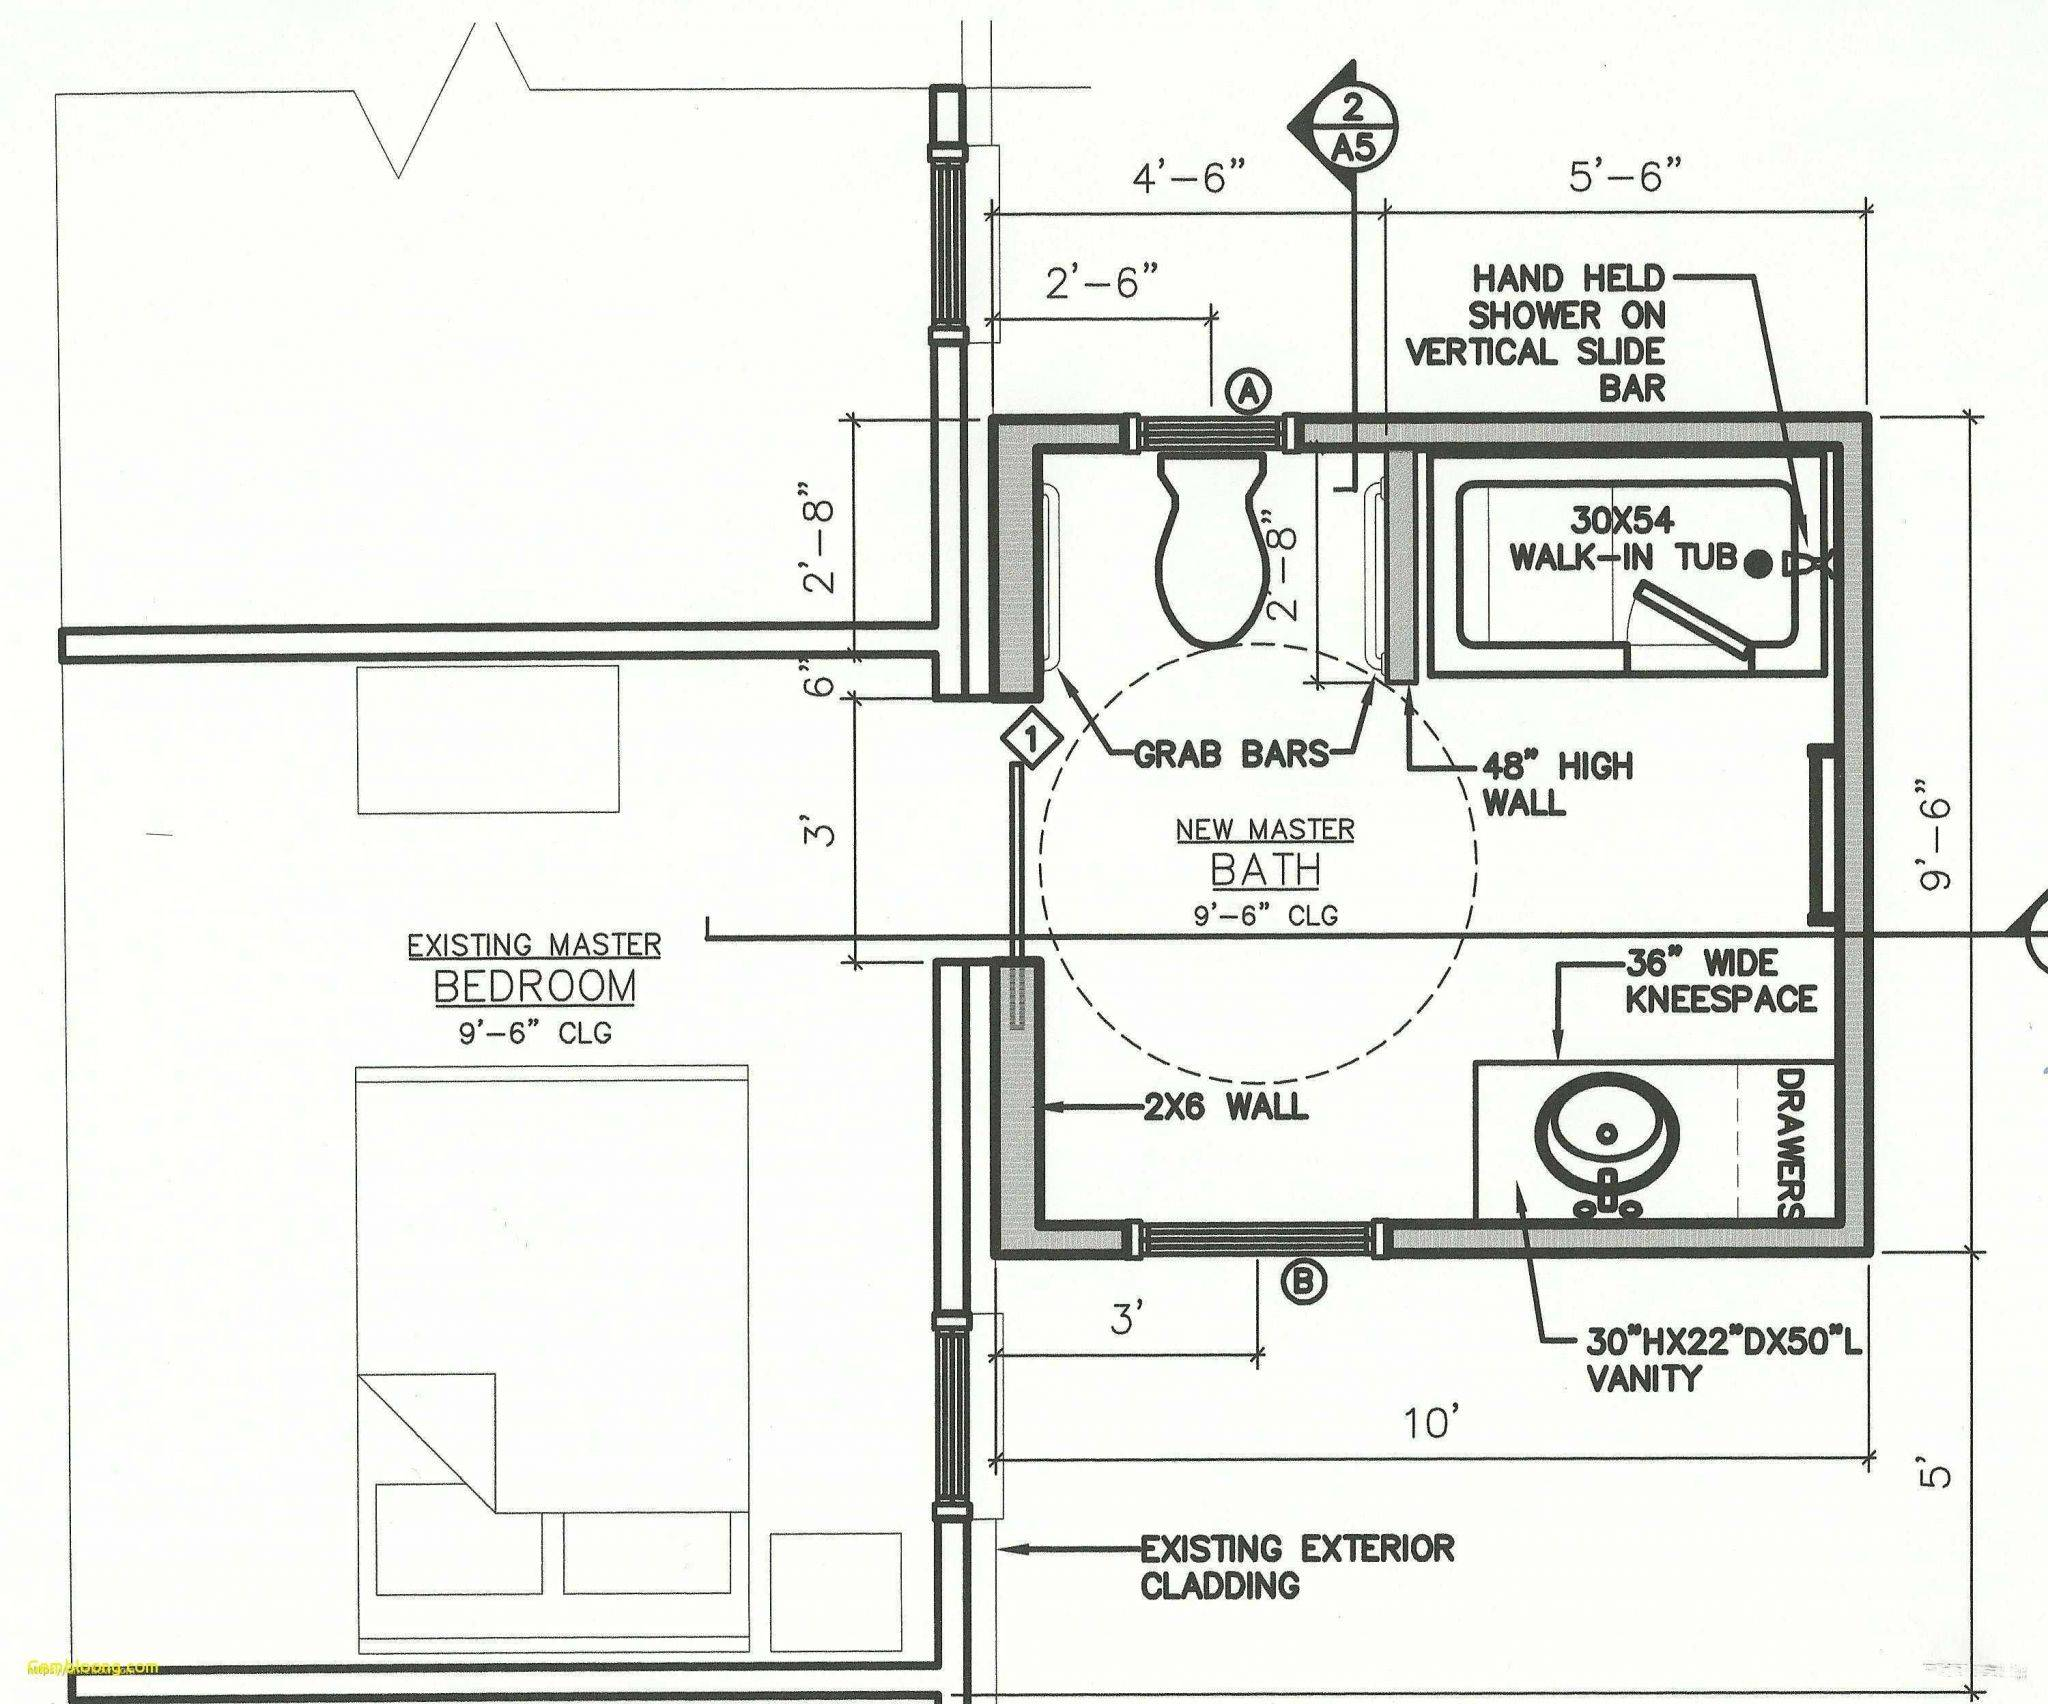 laundry room floor plans along with 97 pole barn home floor plans room furnishing of laundry room floor plans